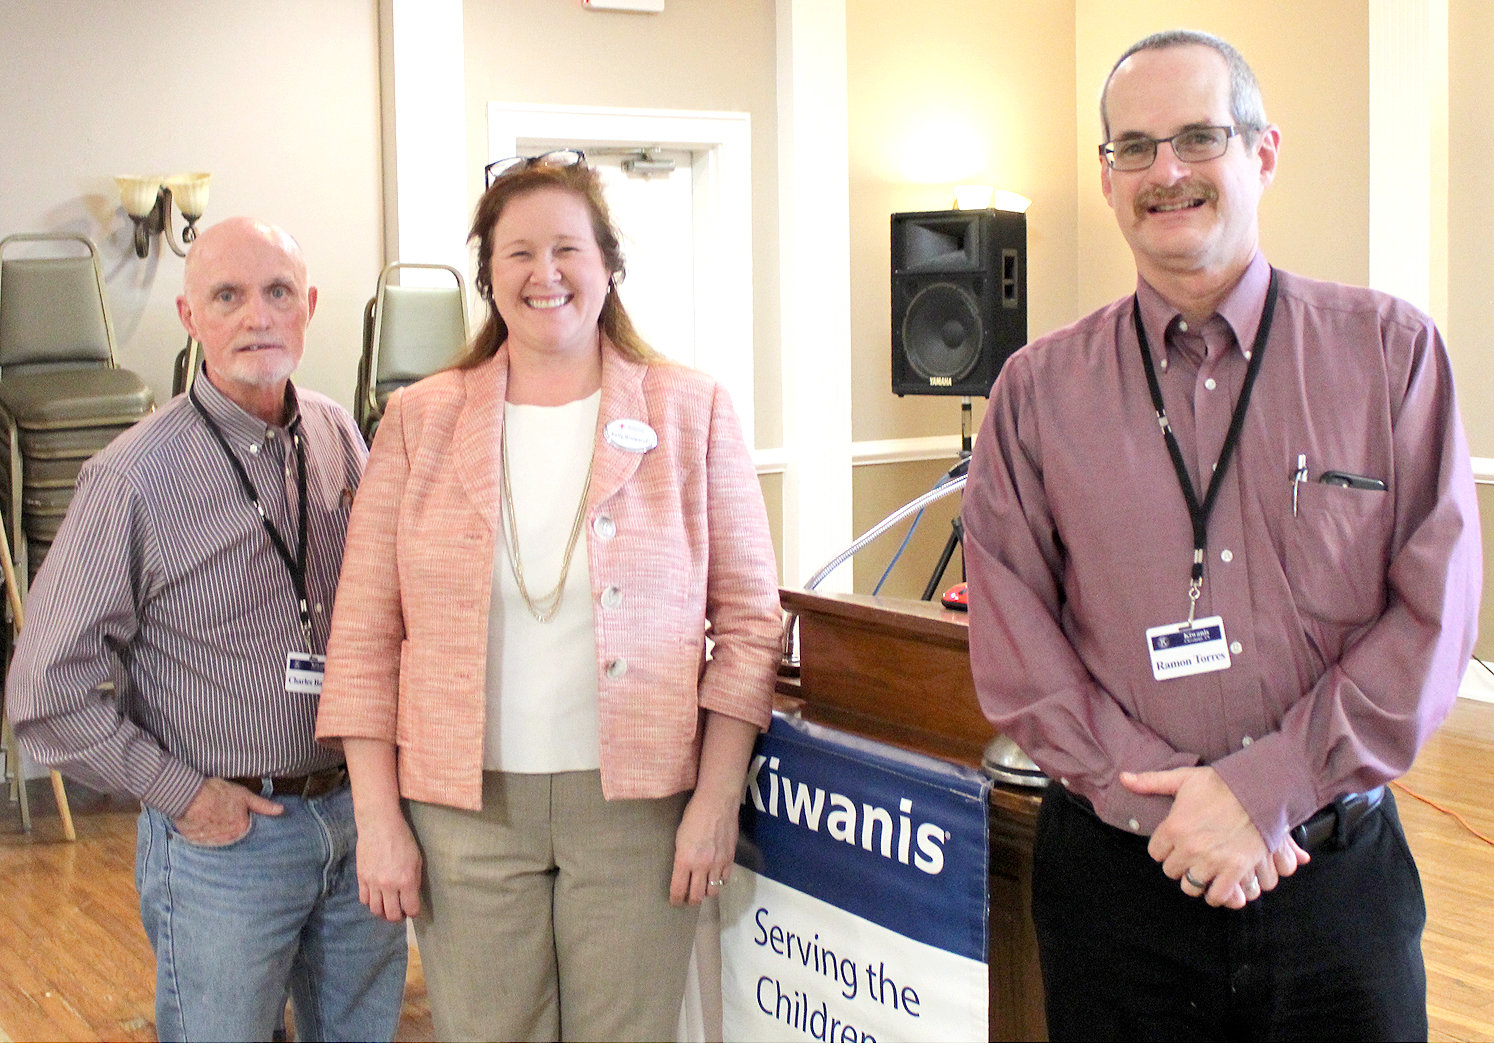 KELLY BROWAND, center, a community volunteer for the American Red Cross, was the guest speaker at last week's Cleveland Kiwanis Club luncheon at the Elks Lodge downtown. With Browand, after the program, are Program Chairman Charles Bagley, left, and Kiwanis President Ramon Torres.